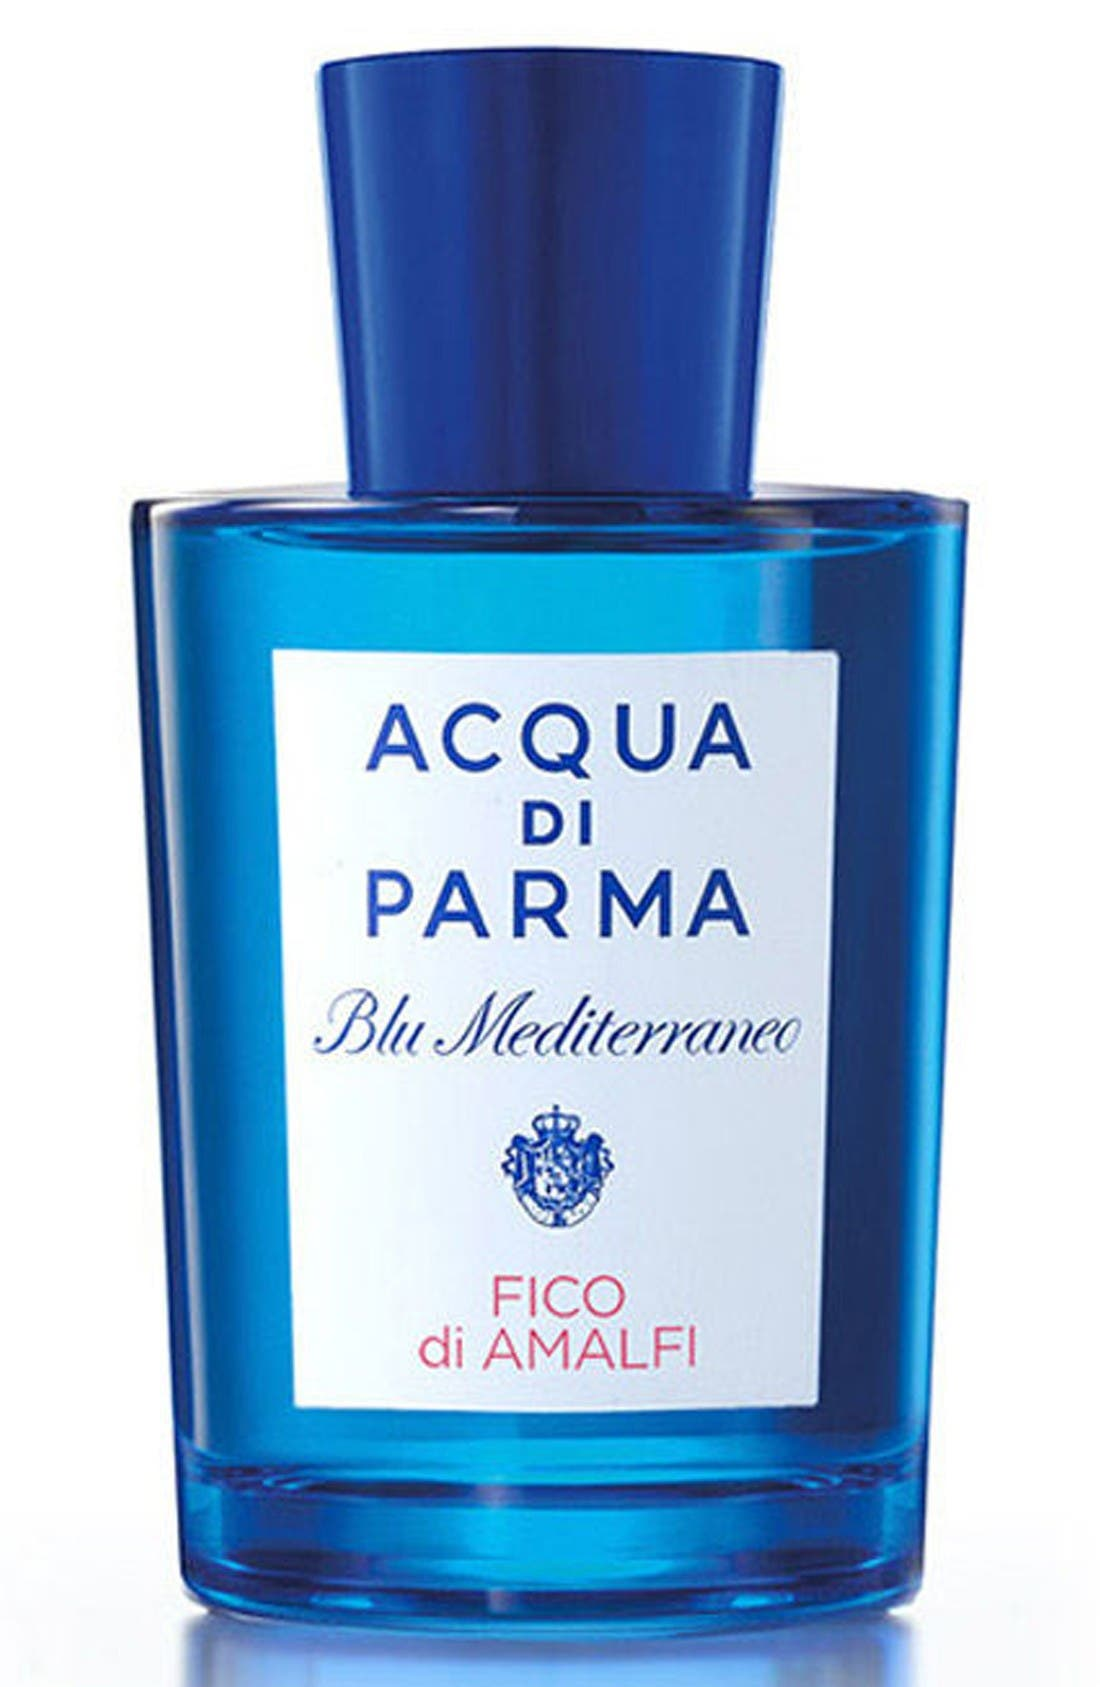 Alternate Image 1 Selected - Acqua di Parma 'Blu Mediterraneo' Fico di Amalfi Eau de Toilette Spray